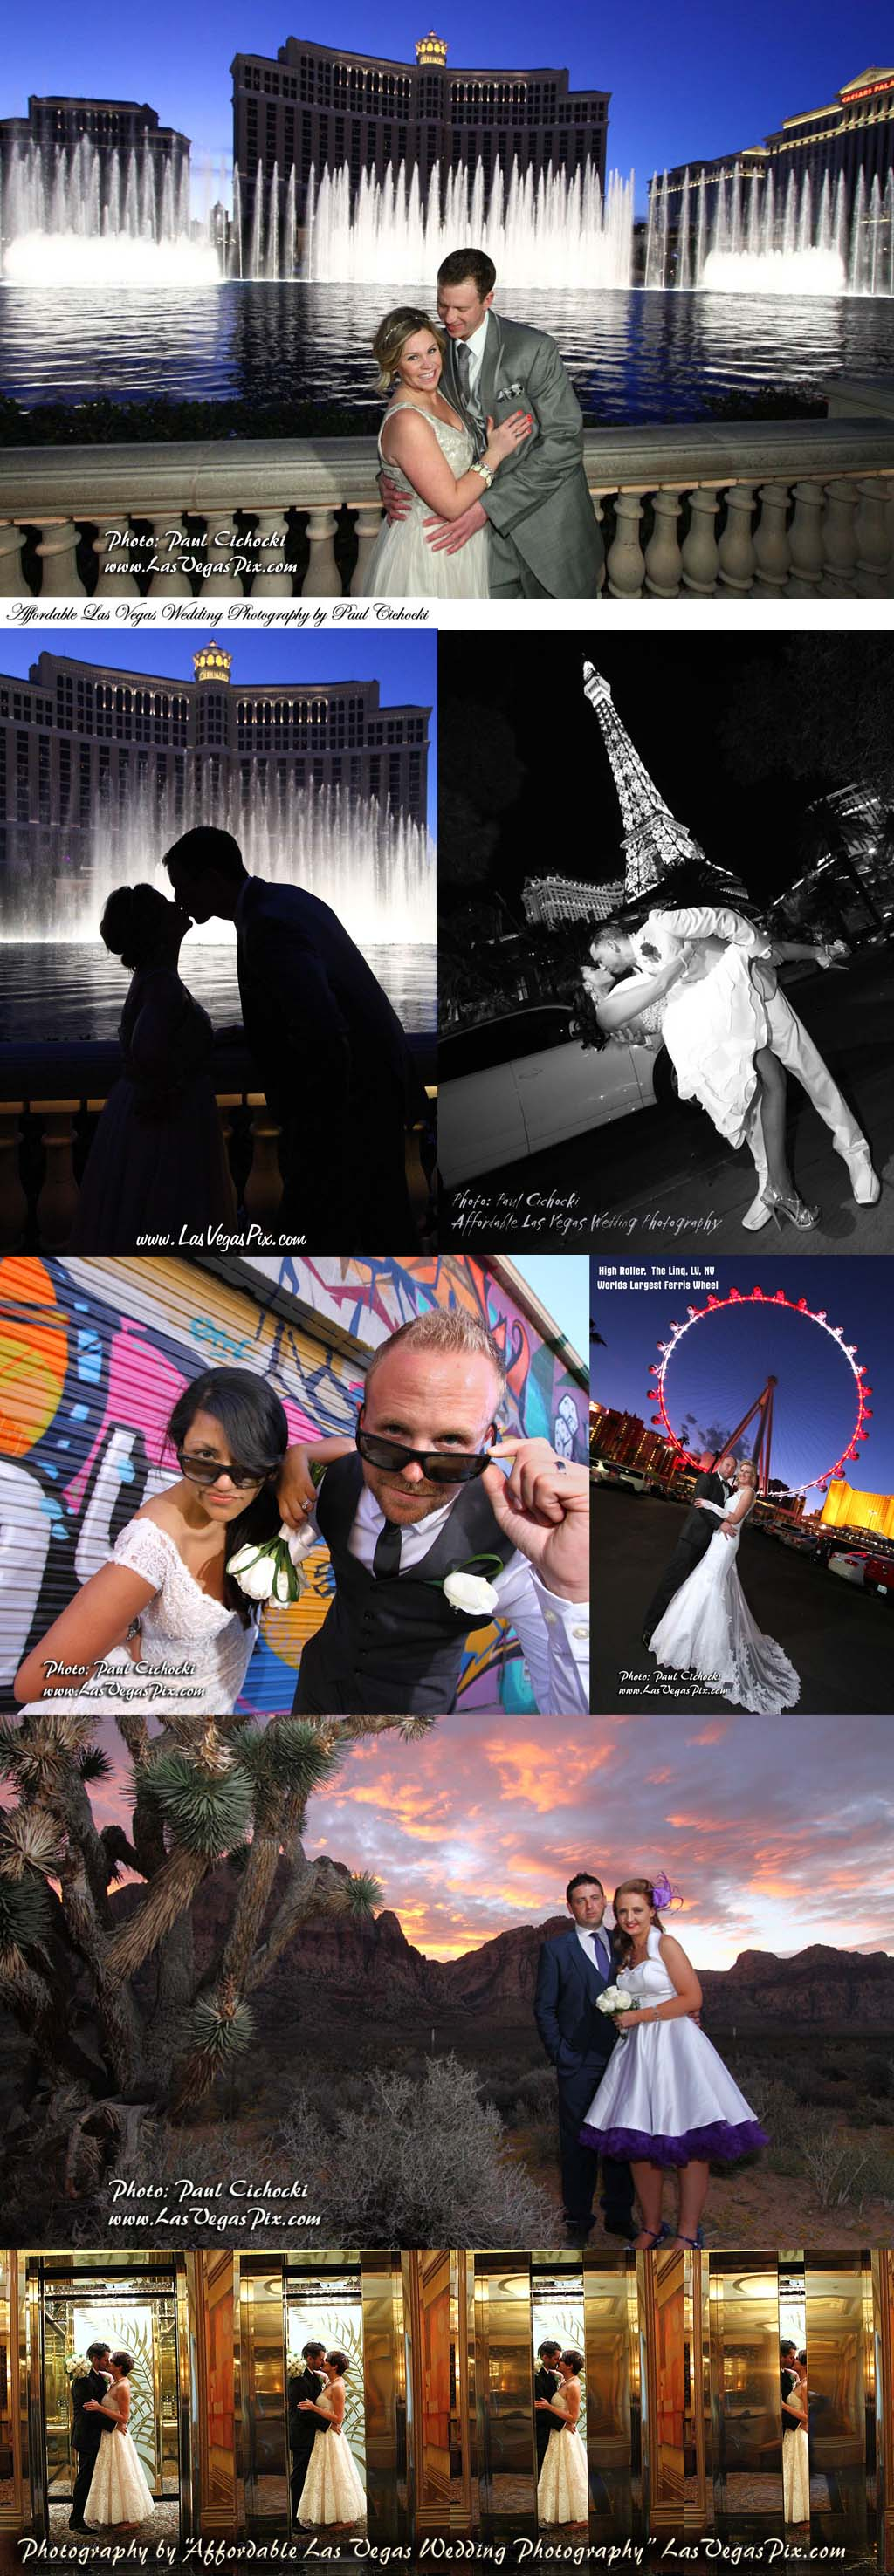 Strip Photography Tour In Front Of Special Memories Wedding Chapel Las Vegas Photographer